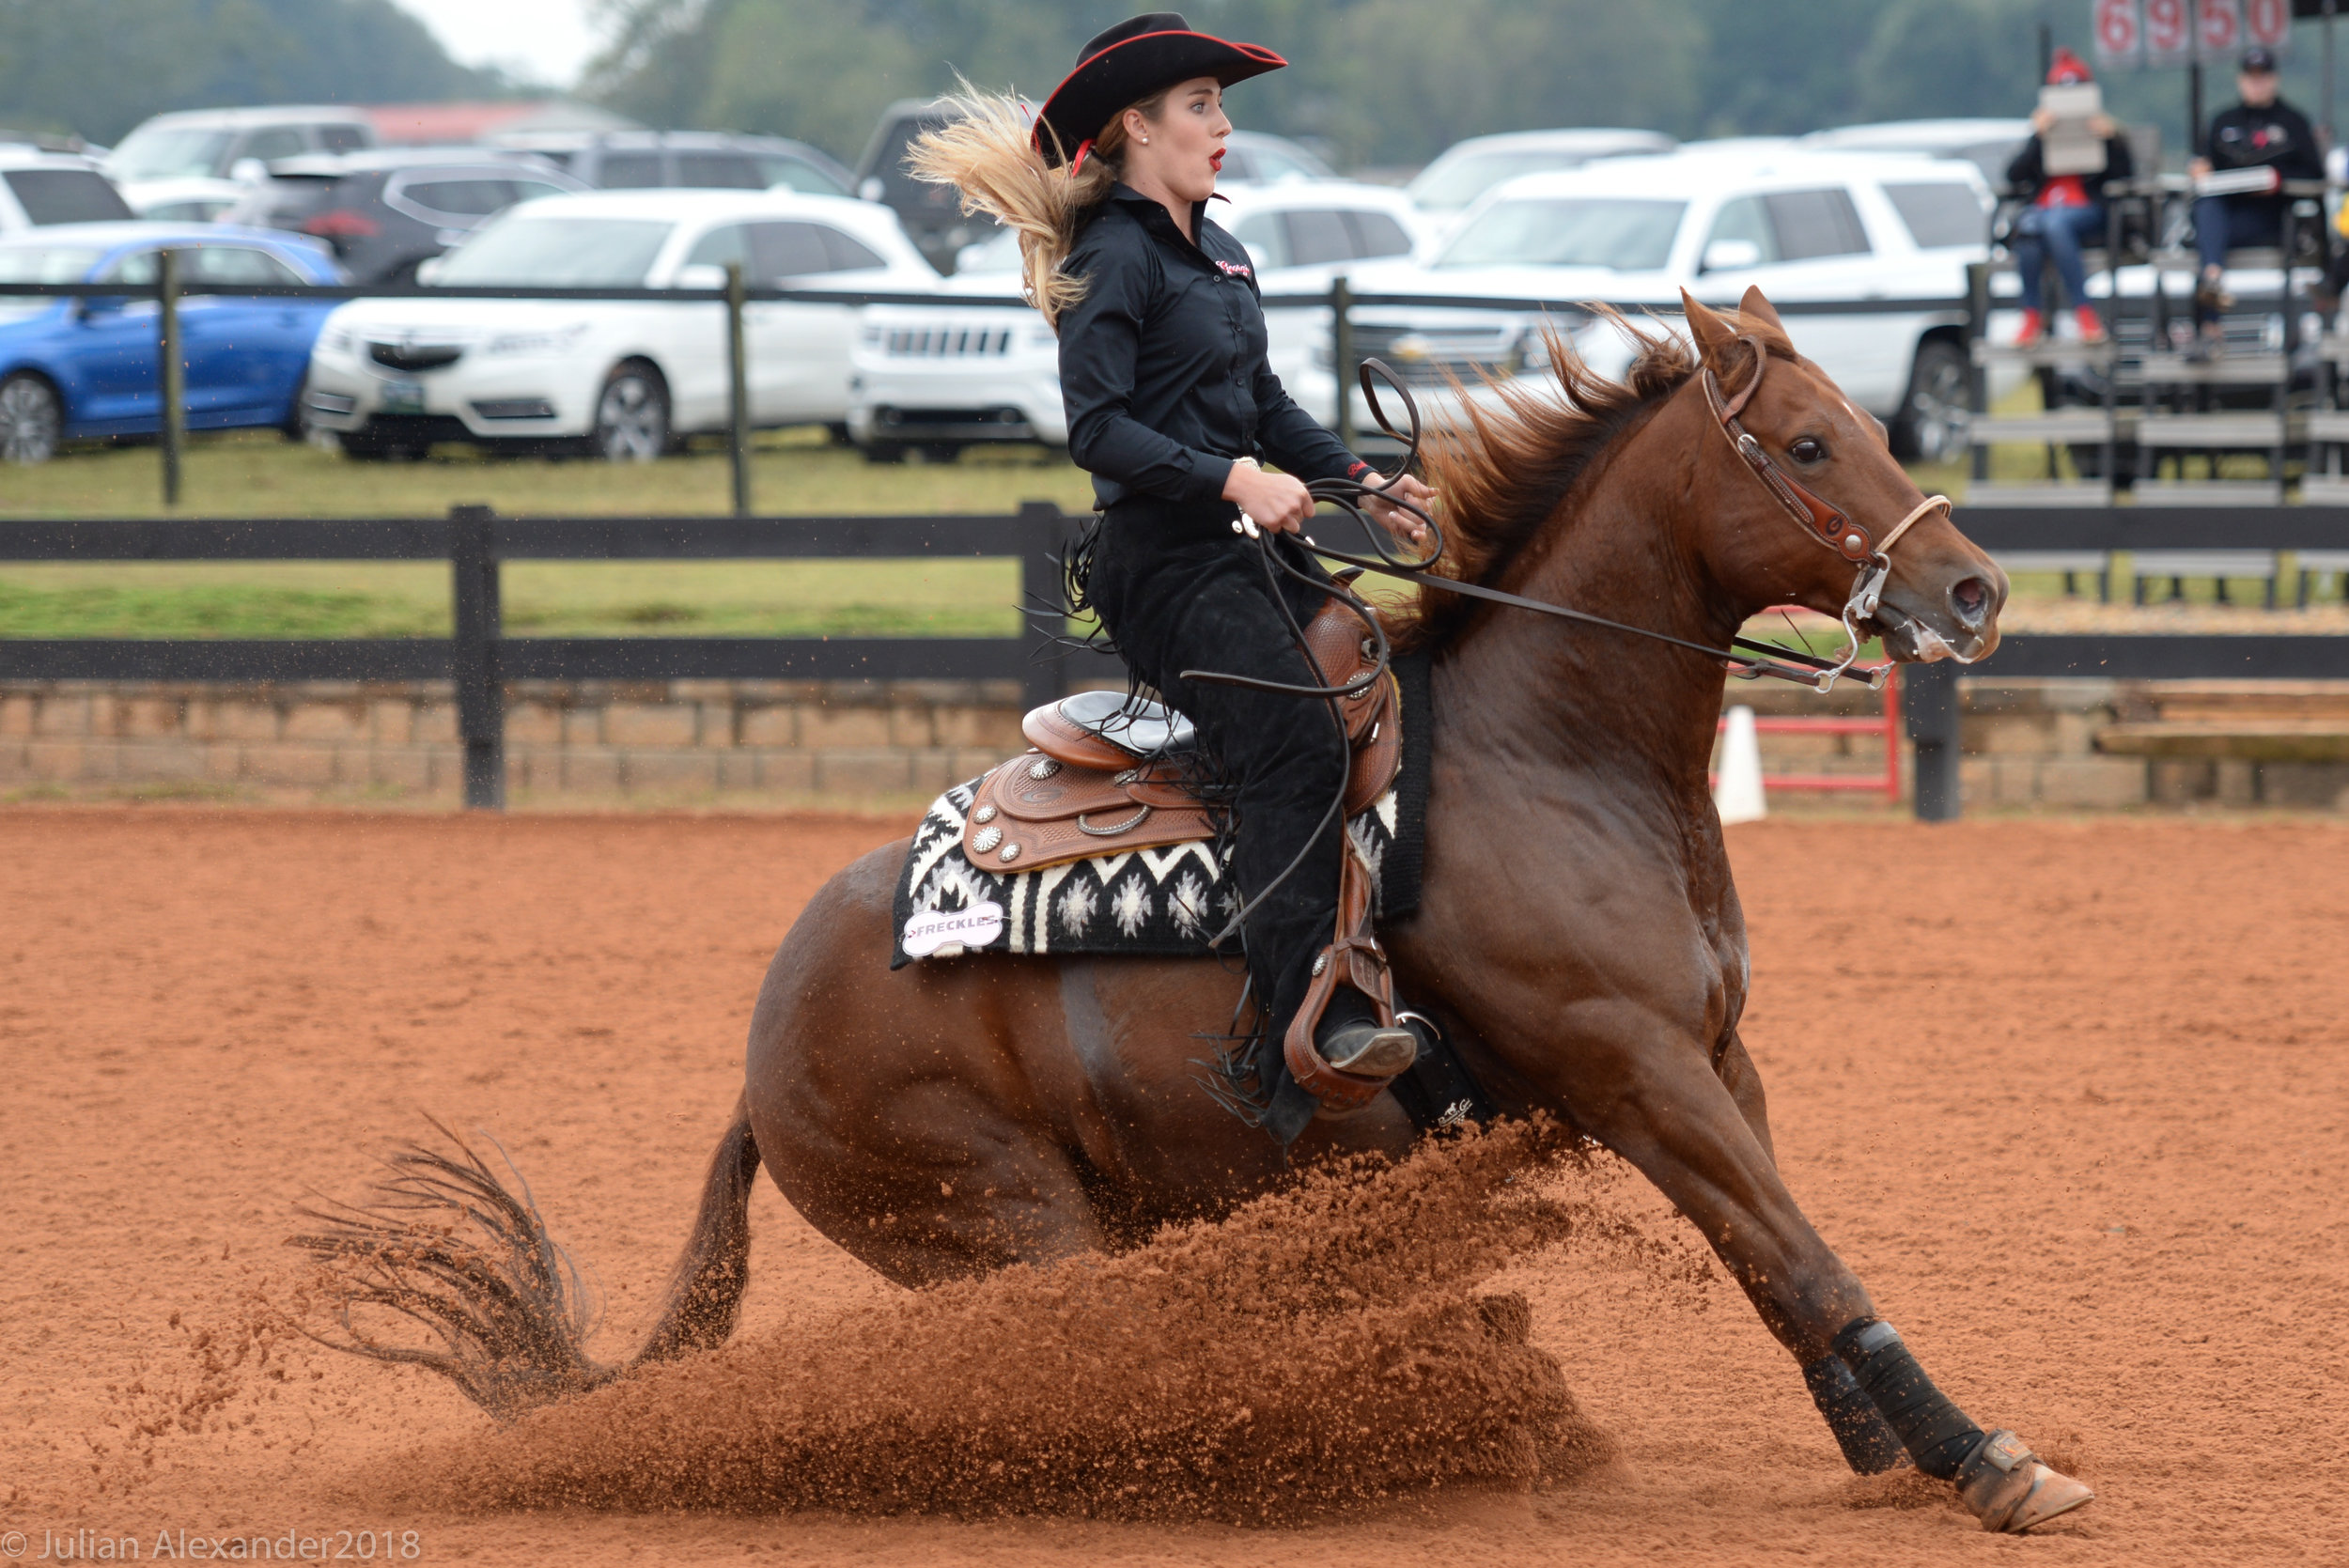 Annabeth Payne, junior from Tallahassee, Florida, competes on horse Freckles during the reining event during a meet against Oklahoma State University on Oct. 20, 2018 at the University of Georgia Equestrian Complex in Bishop, Georgia. UGA won the reining event 3-2. (Photo/Julian Alexander)